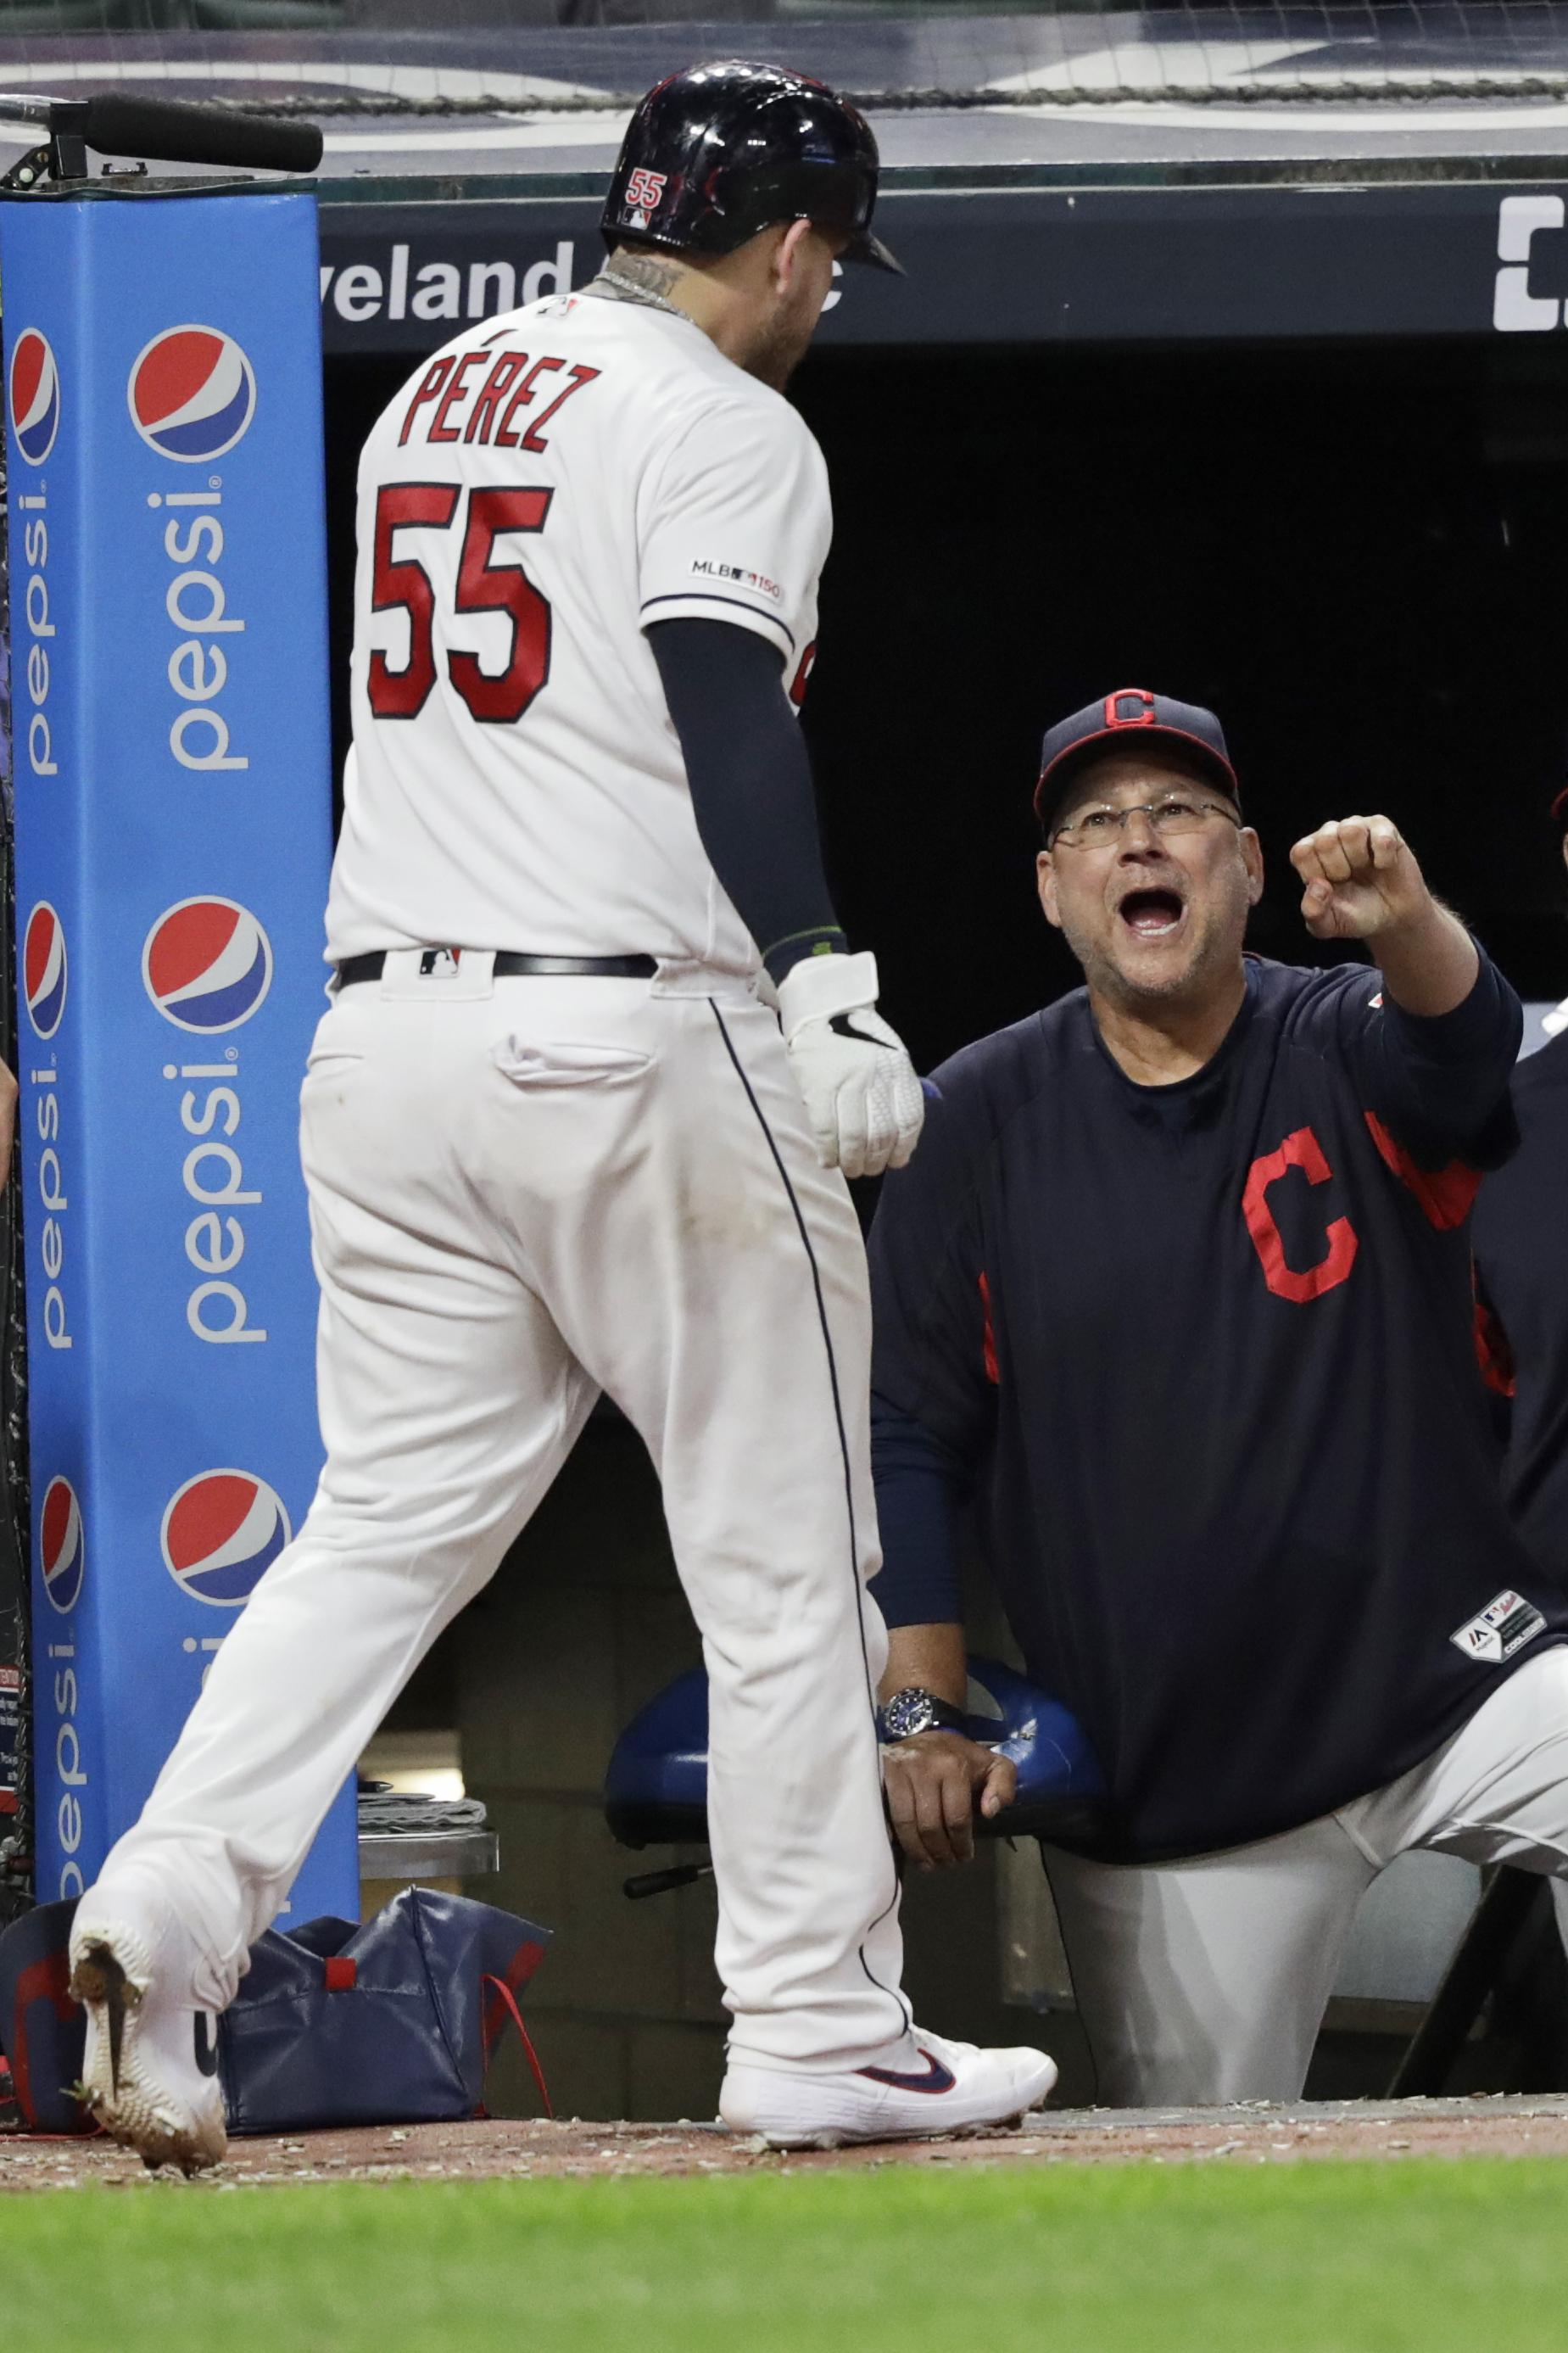 Indians manager Terry Francona has eye surgery, misses game